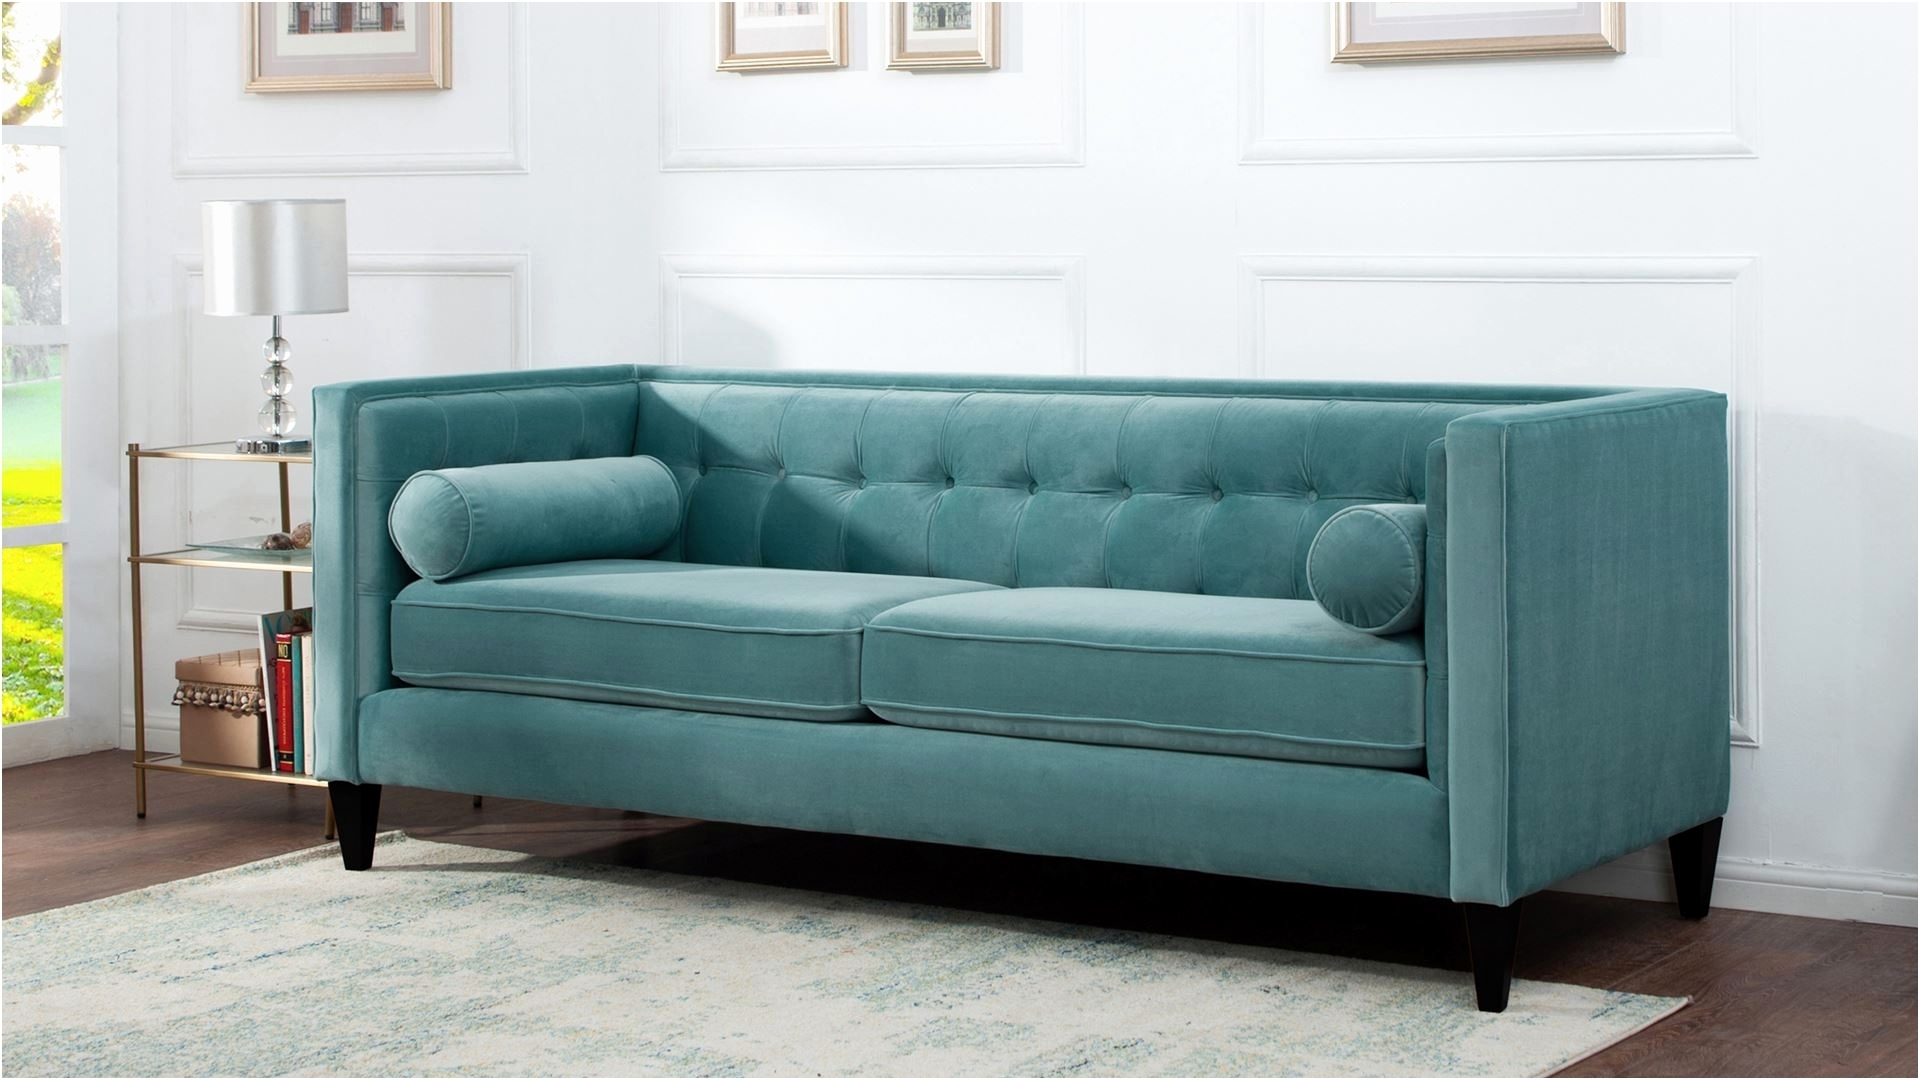 Newest Turquoise Sofas Intended For Sofas : Black Leather Sofa Natuzzi Leather Sofa Turquoise Leather (View 11 of 20)